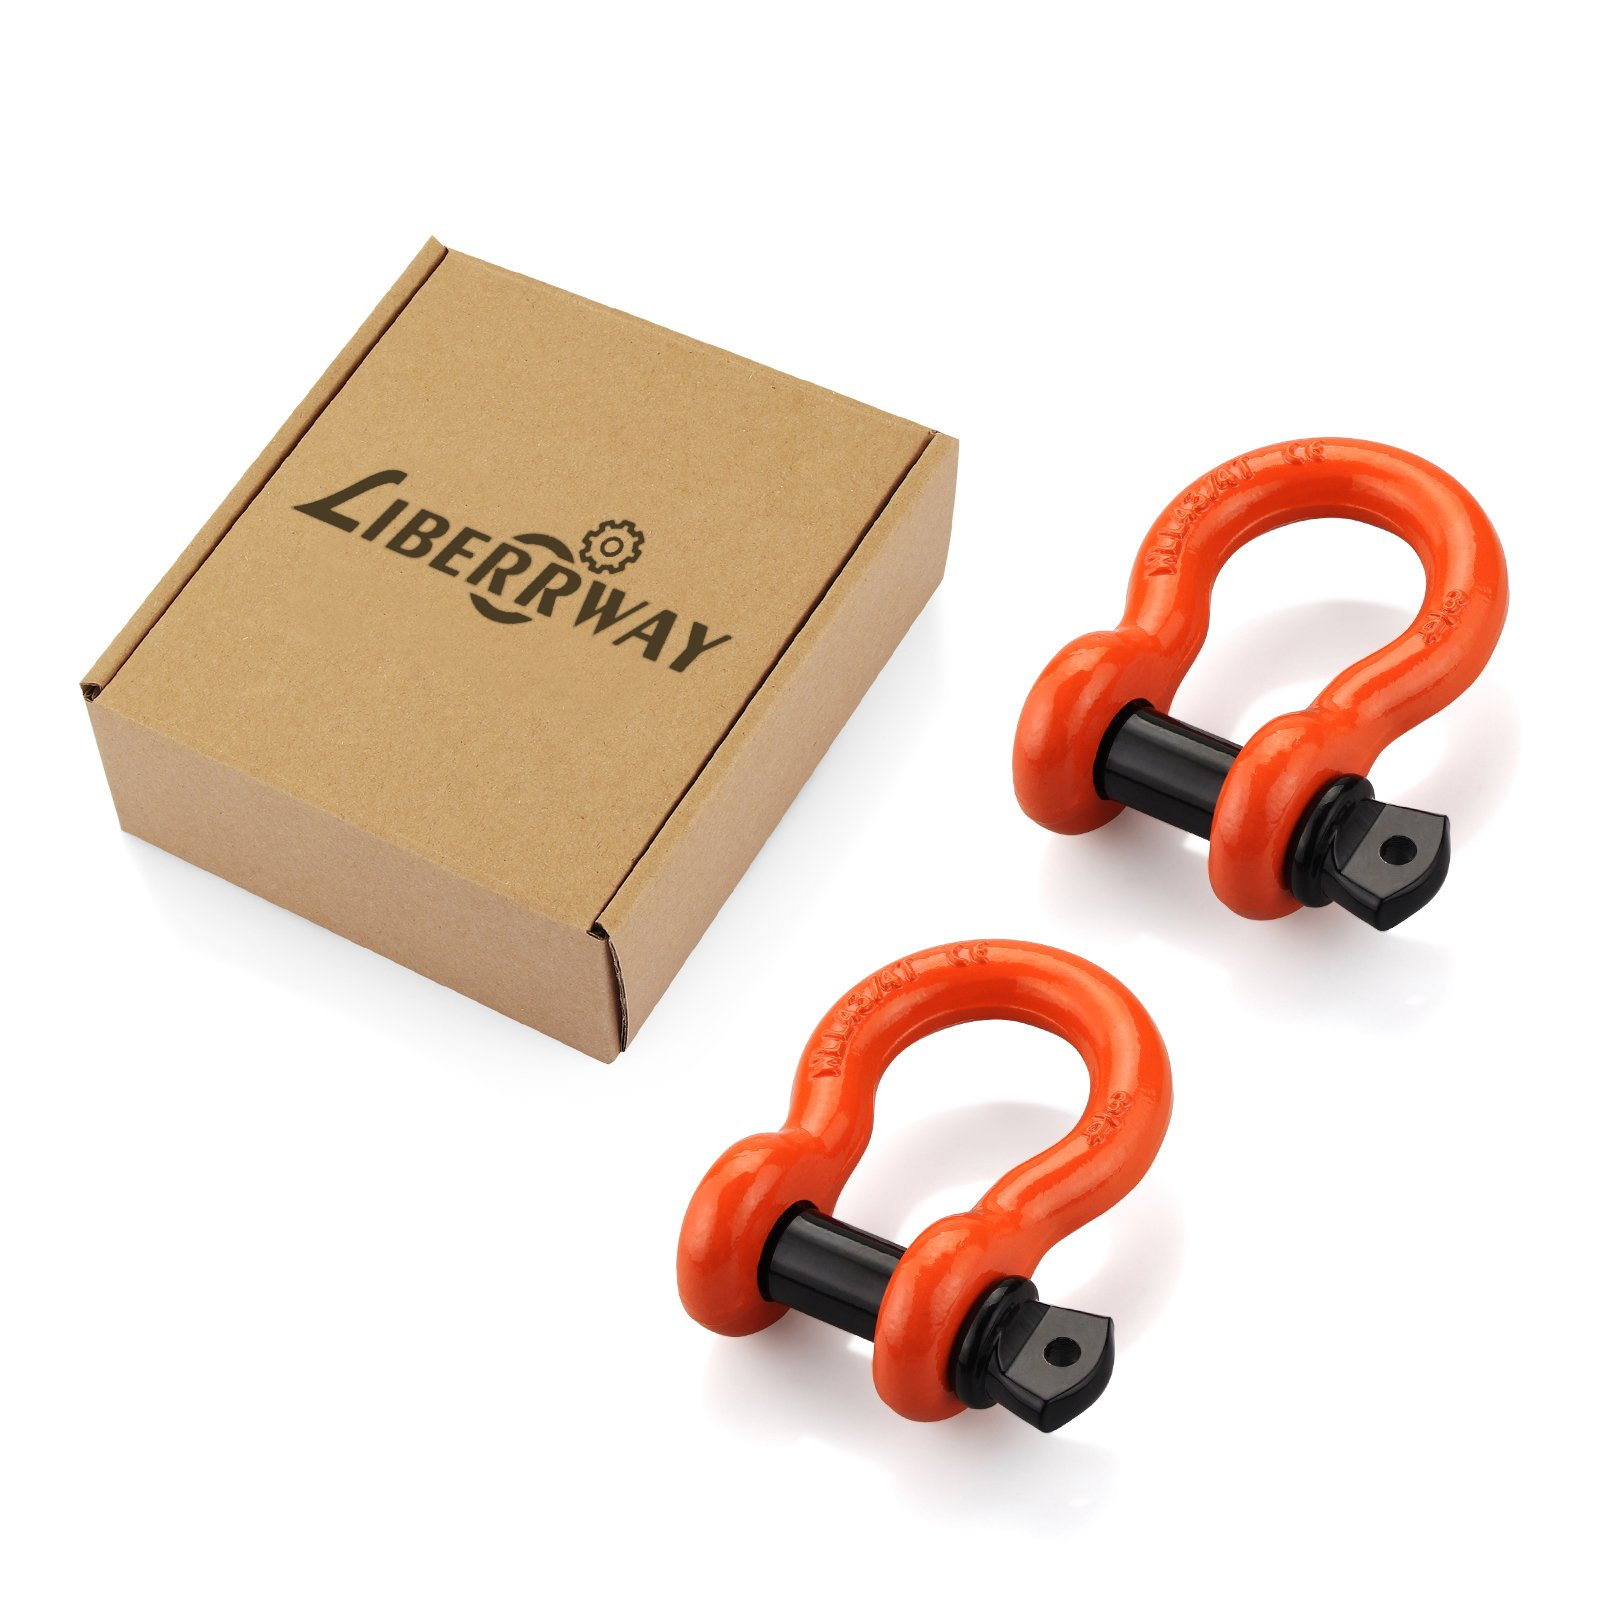 LIBERRWAY Shackles 3/4'' (2 Pack) D Ring Shackle Rugged Off Road Shackles 28.5 Ton (57,000 lbs) Maximum Break Strength with 7/8'' Pin Heavy Duty D Ring for Jeep Vehicle Recovery, Orange by LIBERRWAY (Image #9)